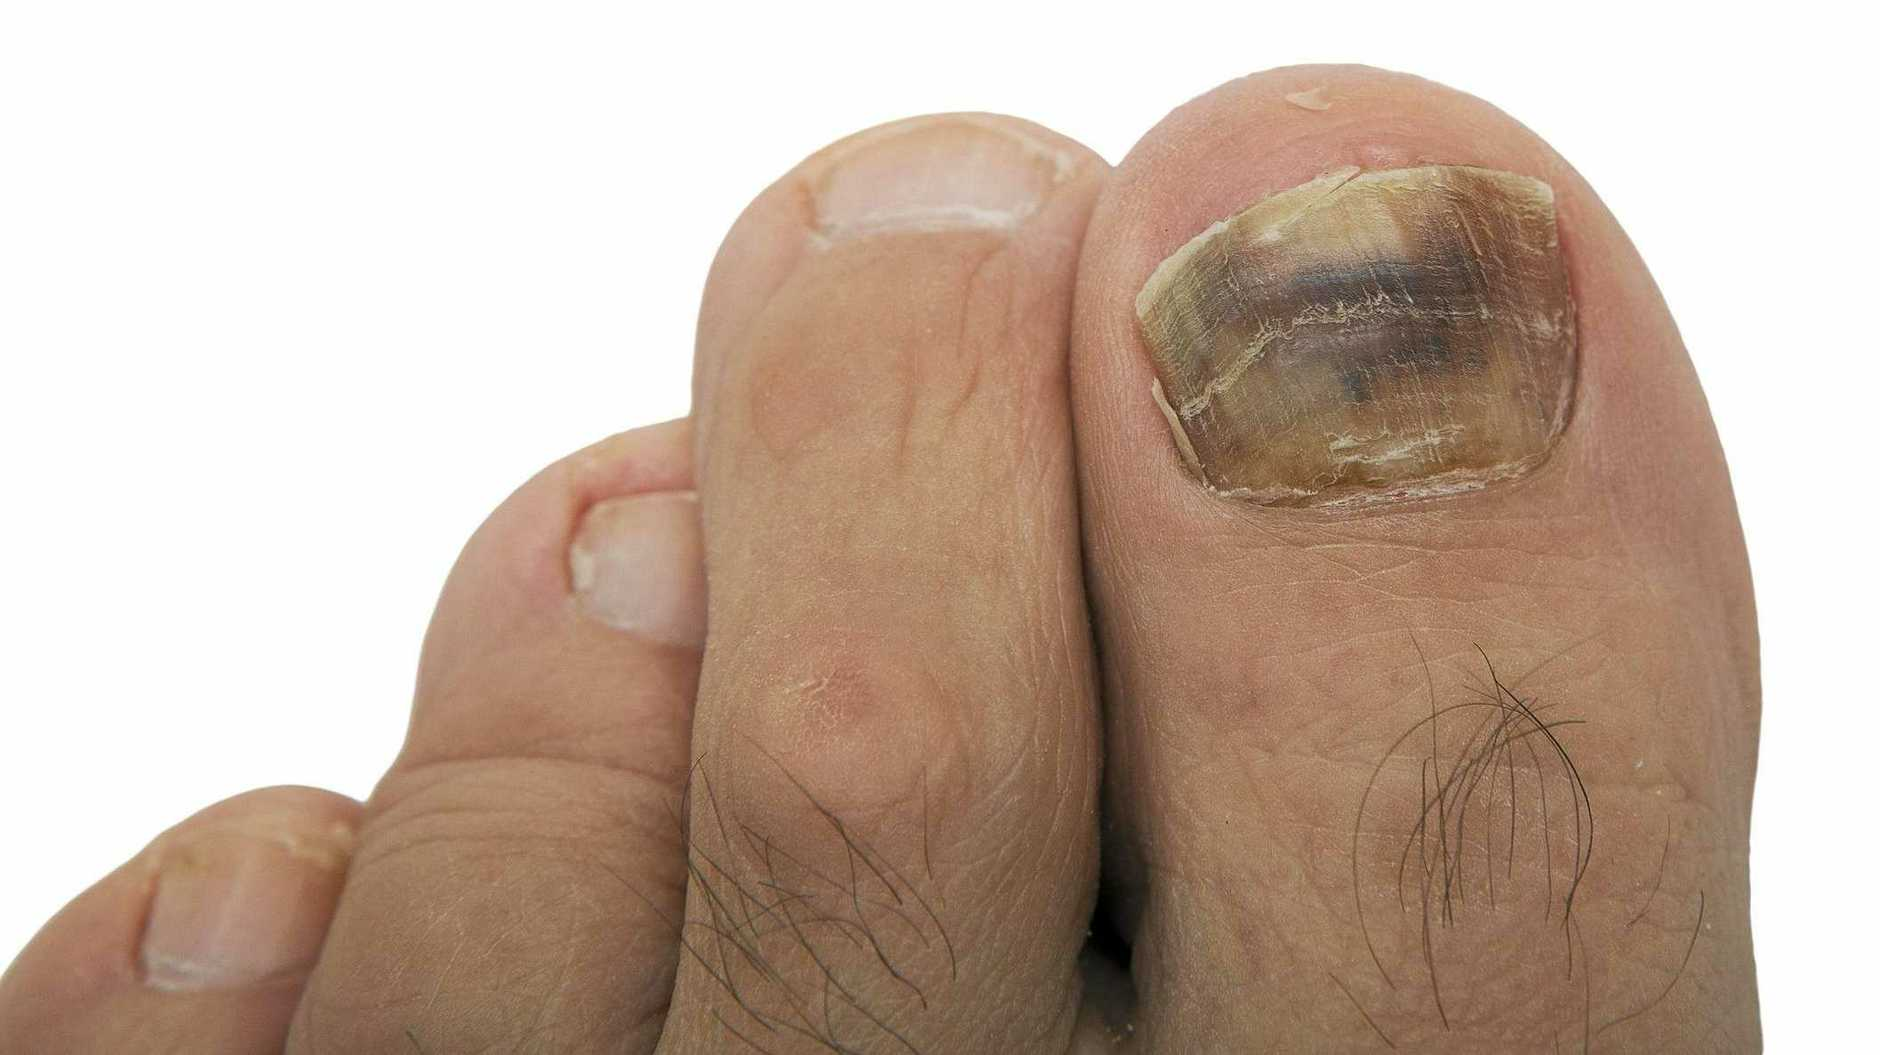 NAIL HEALTH: A new dark line in a light skinned person's nail may be the sign of early melanoma of the nail.